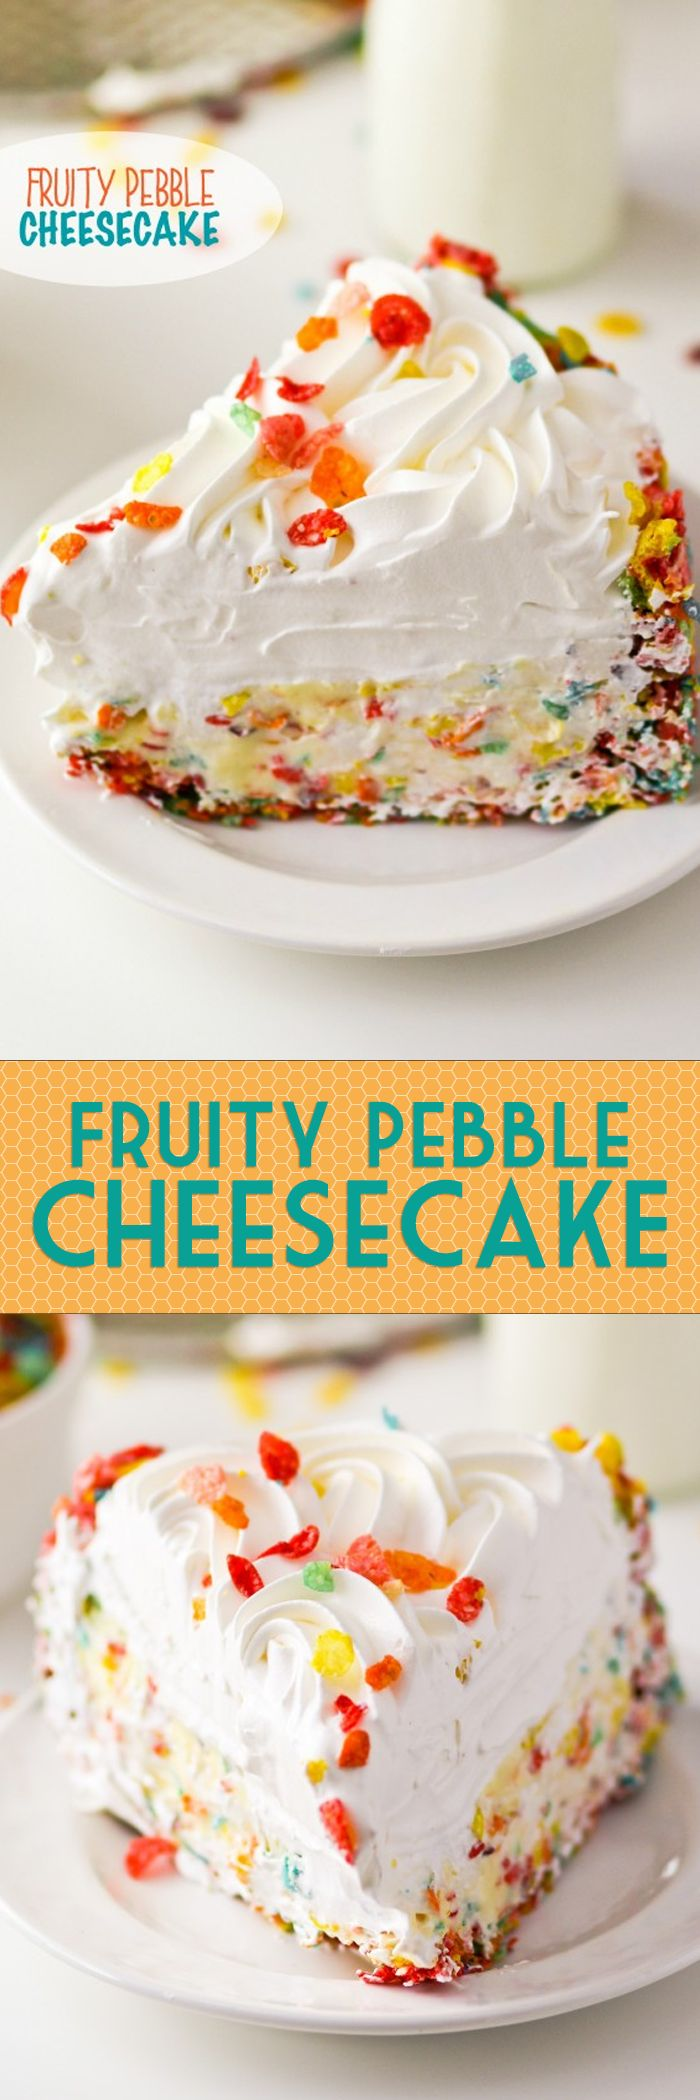 No Bake Fruity Pebble Cheesecake -- two of my favorite things in one dessert!!